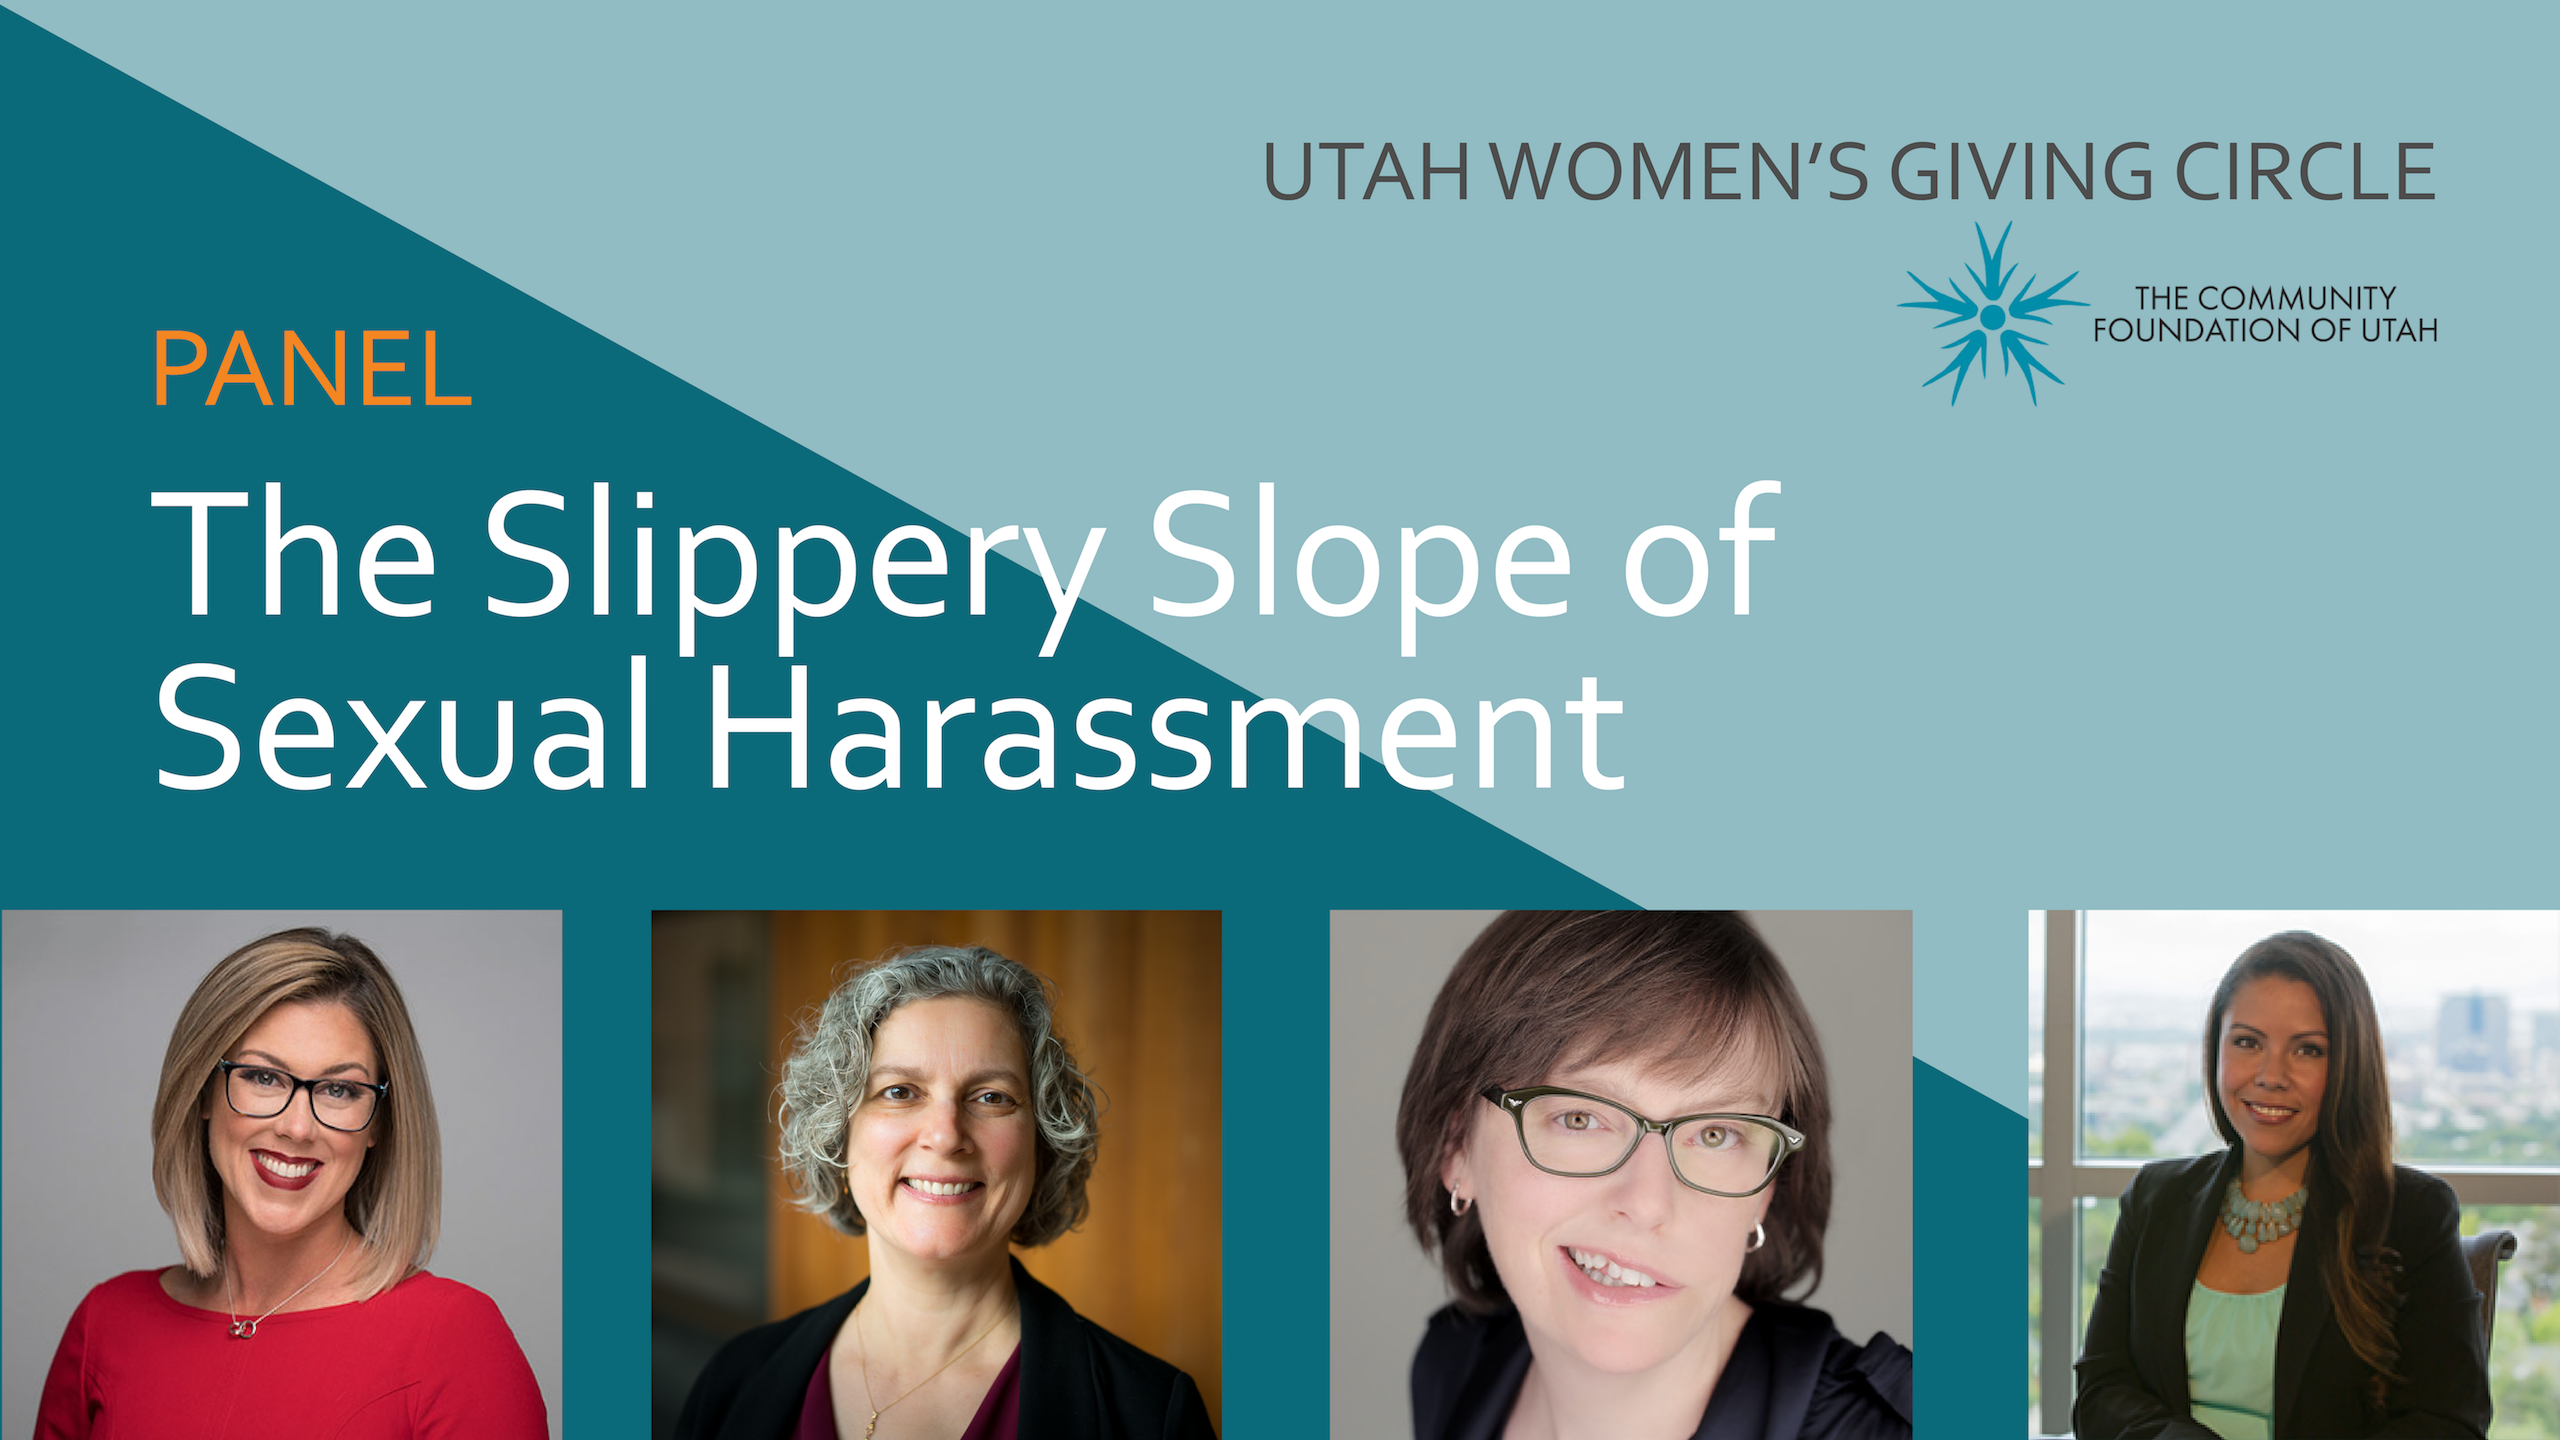 Utah Women's Giving Circle The Slippery Slope of Sexual Harassment Panel